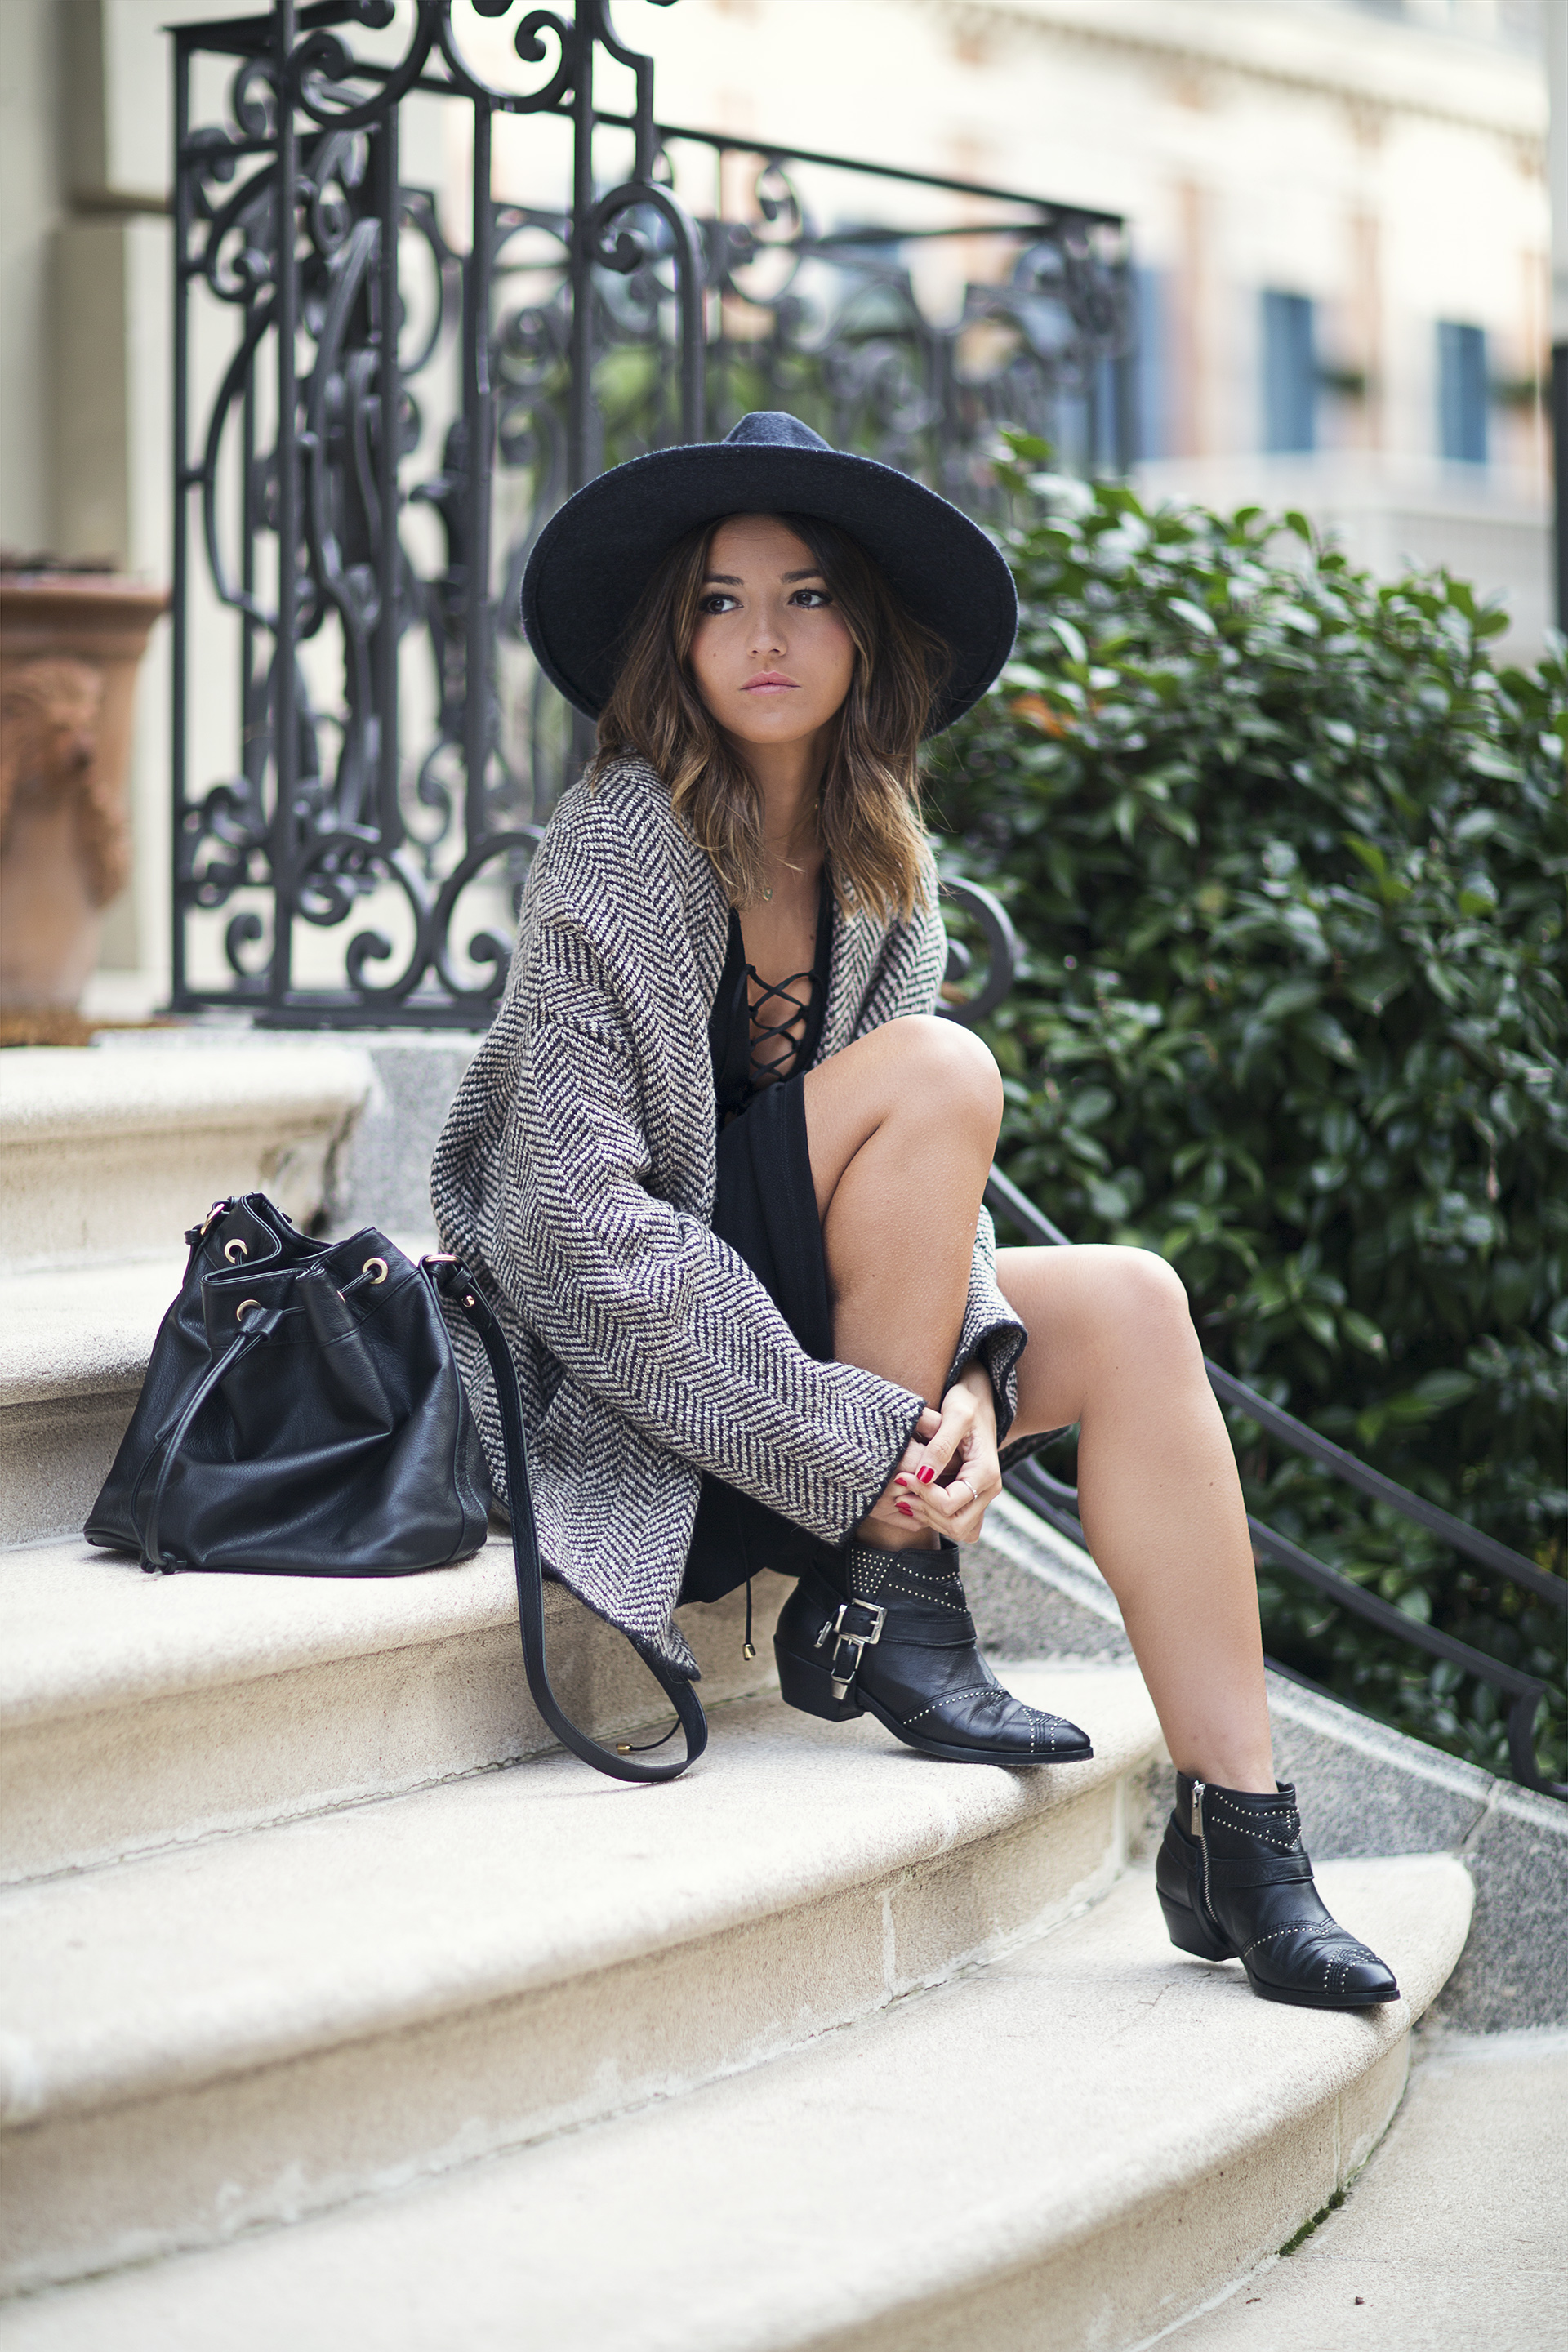 Lace up detailing looks great on a cute mini dress such as this one worn by Alexandra Pereira. Pairing the dress with an oversized tweed blazer and studded ankle boots, this look is edgy and stylish. Dress: Wolflamb, Booties: Anine Bing, Coat: Zara, Bag: Mango, Hat: H&M.